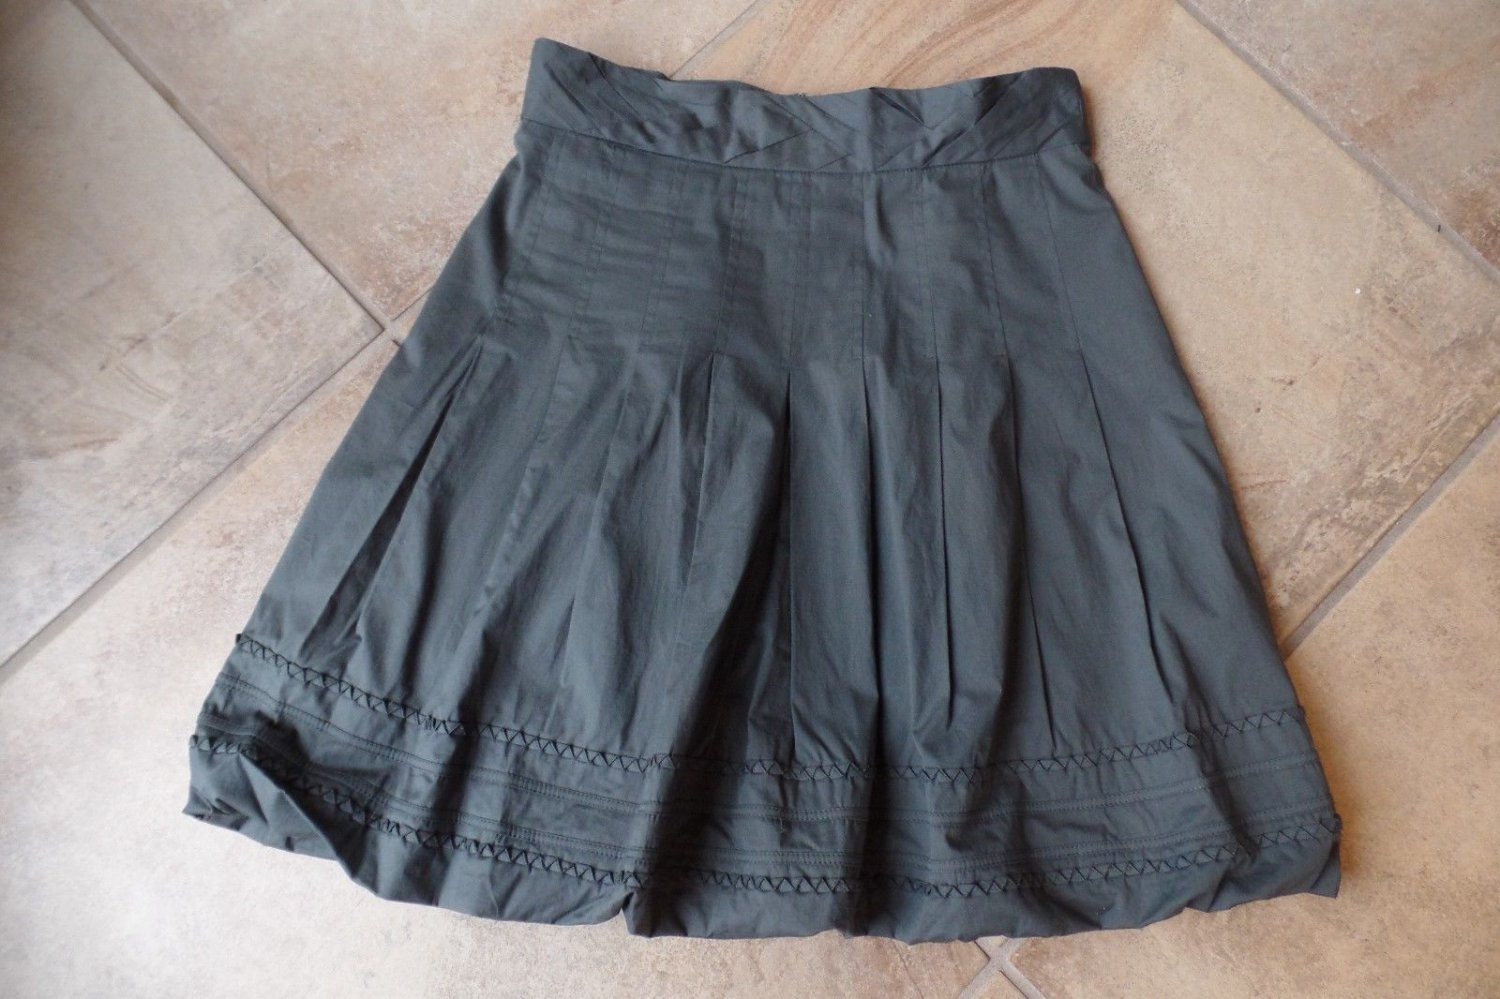 Plenty Tracy Reese Olive A Line Bubble Skirt 6